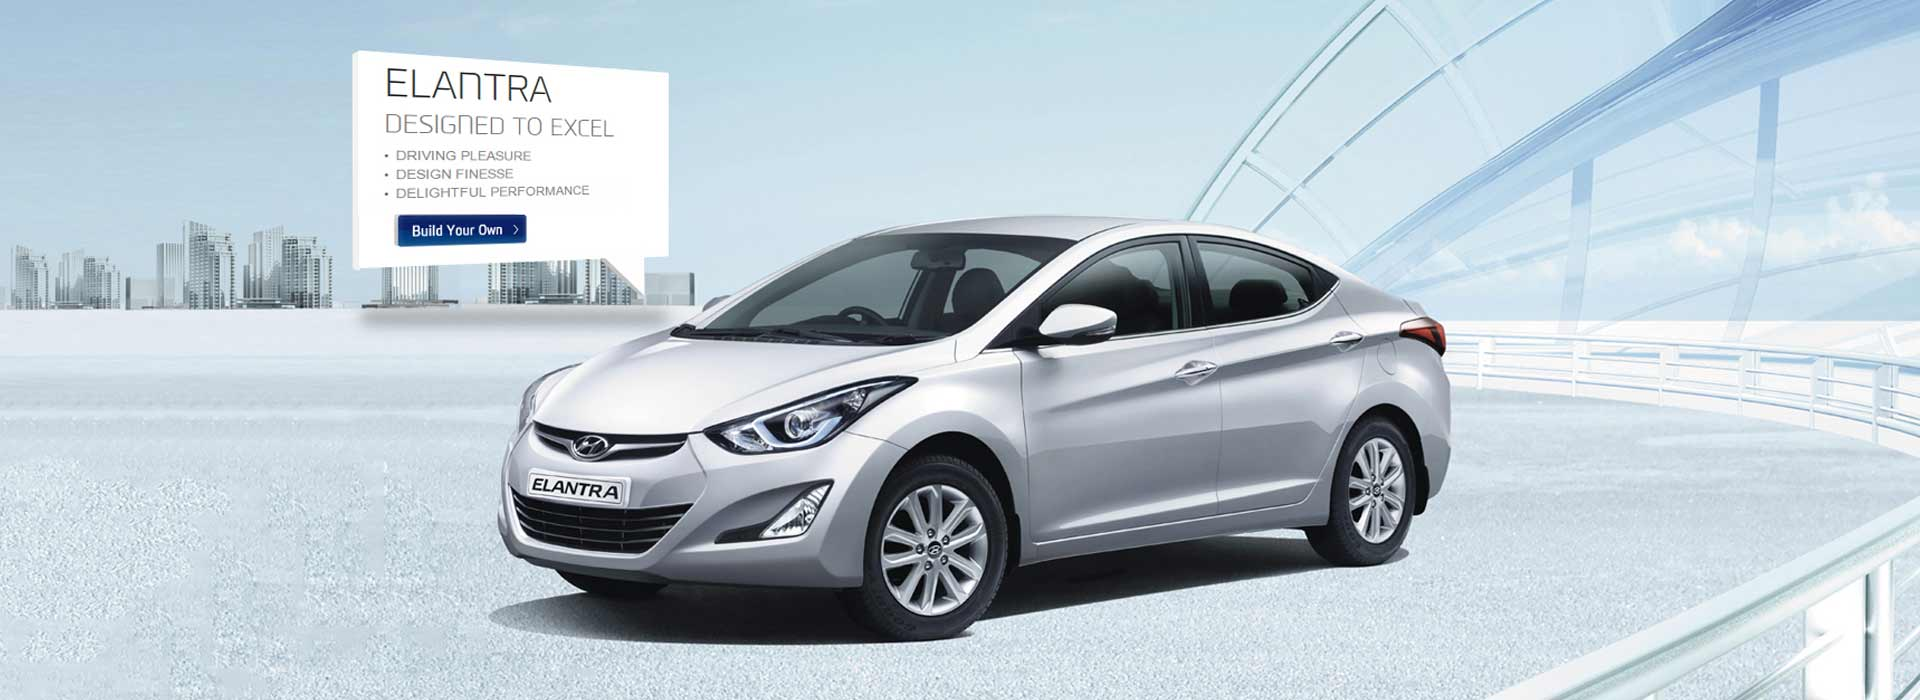 The All New Elantra